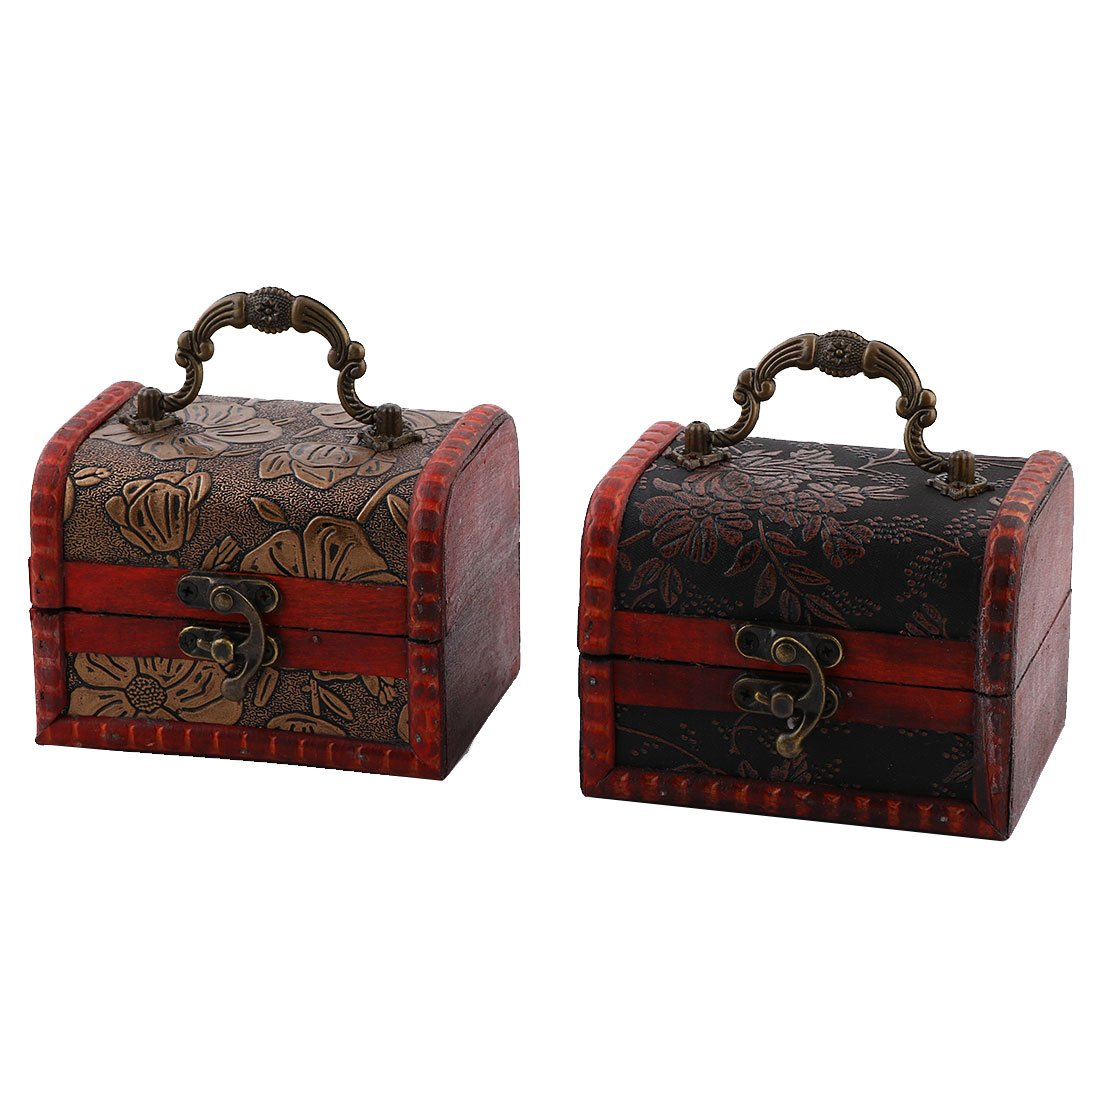 uxcell Wood Household Retro Style Ring Jewelry Candy Box Case Organizer 2 Pcs Dark Red